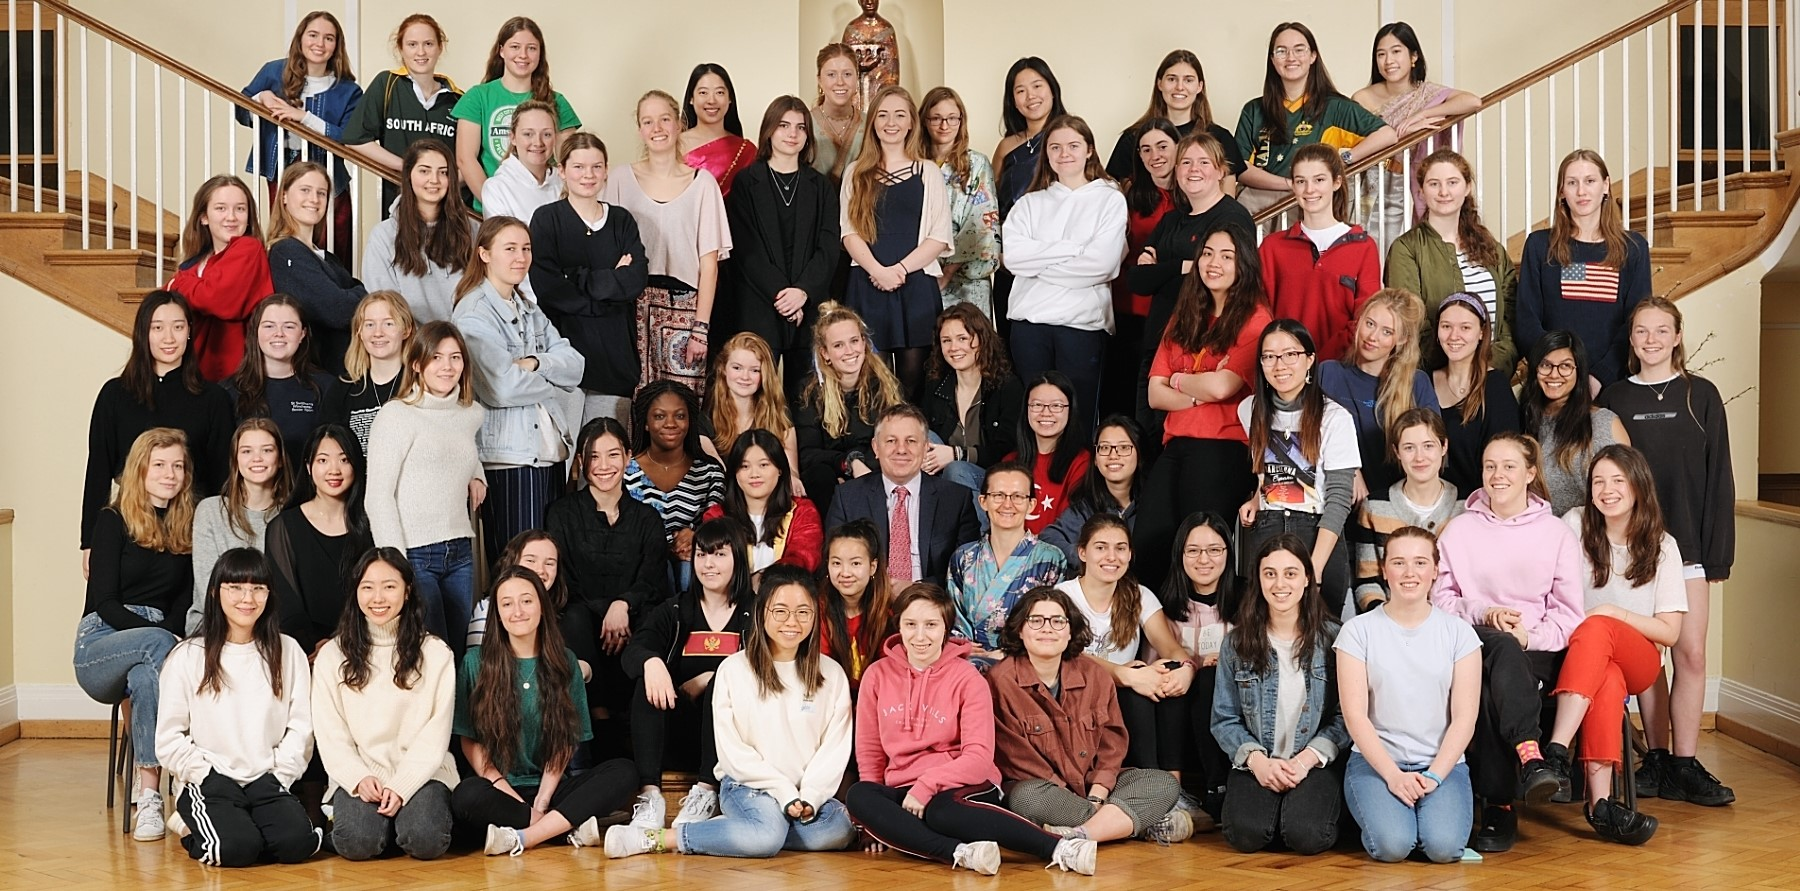 A-level success for multi-faceted St Swithun's girls